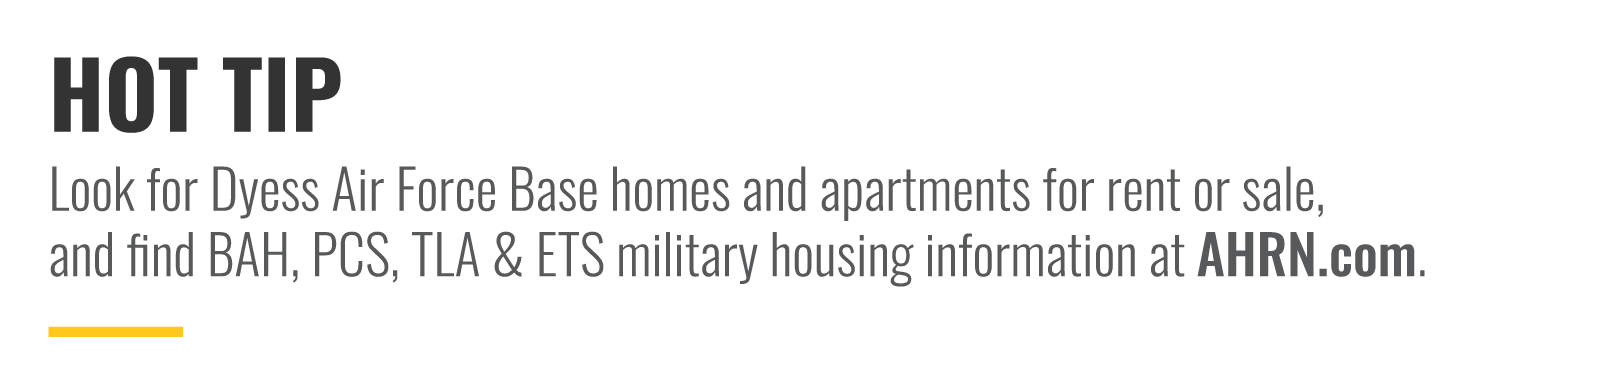 Look for homes and apartments for rent or sale at AHRN.com.